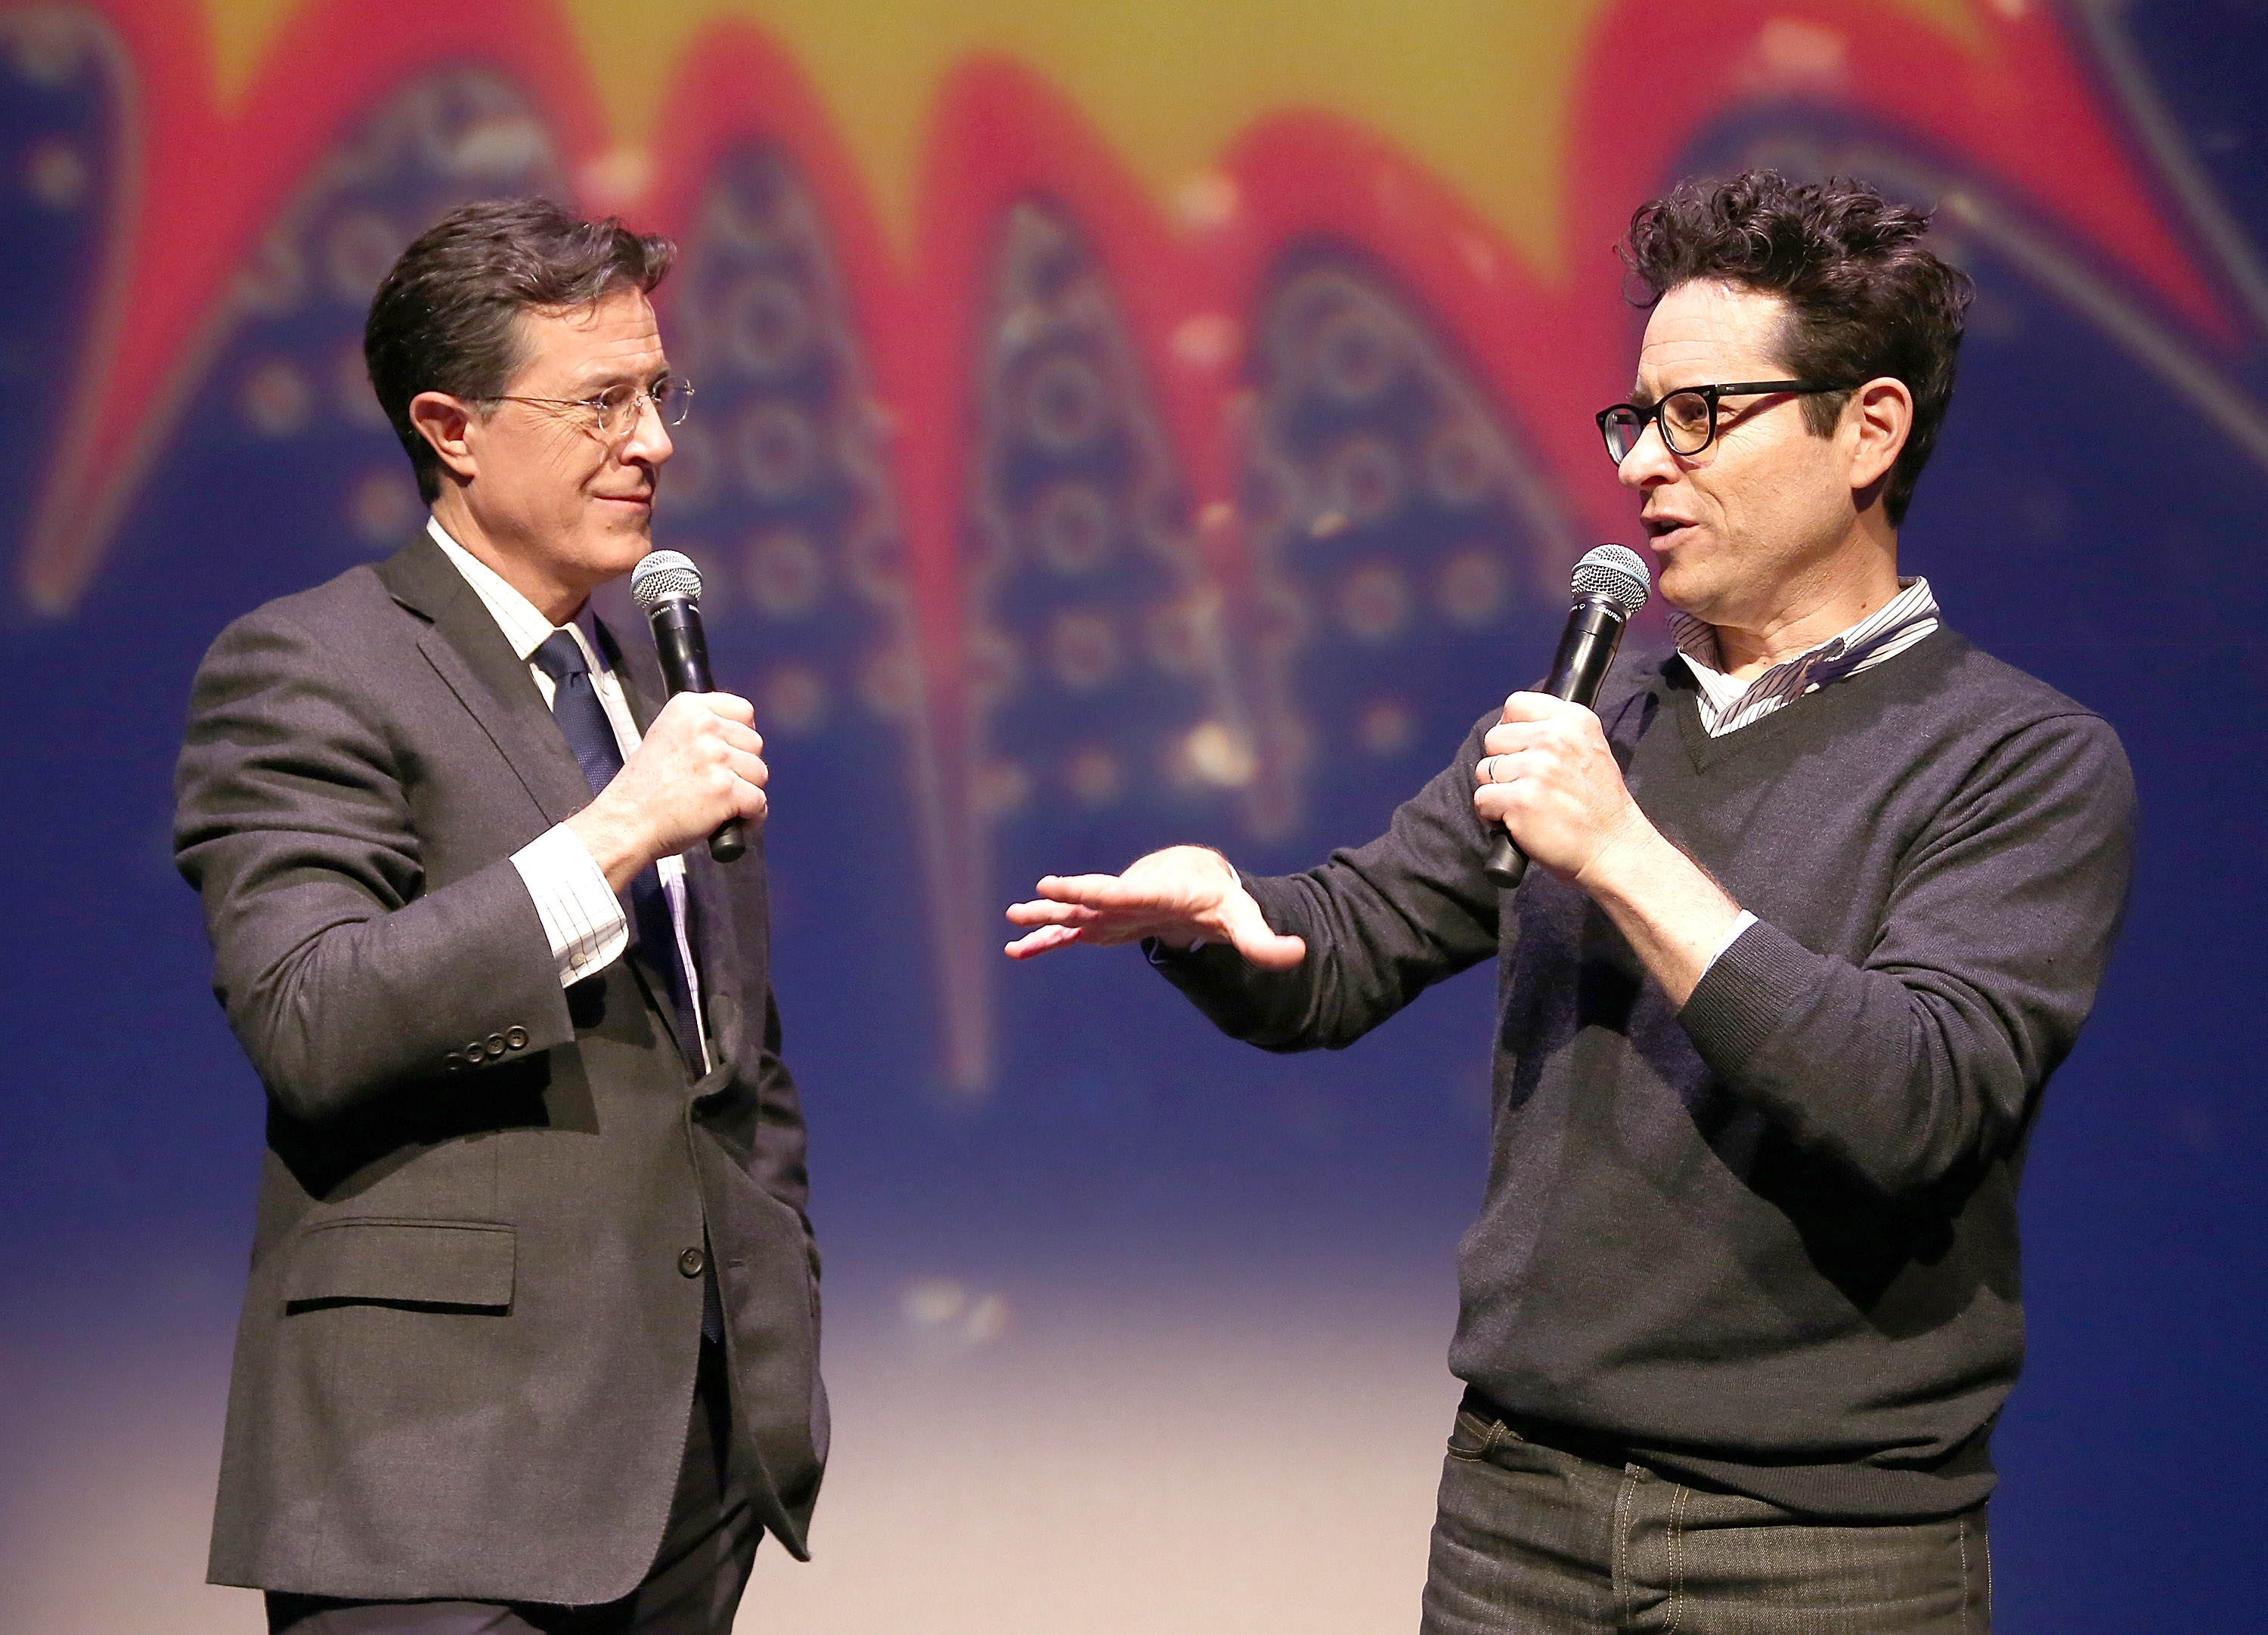 Montclair Film Festival Presents Celebrity Nerd-Off: Stephen Colbert & J.J. Abrams